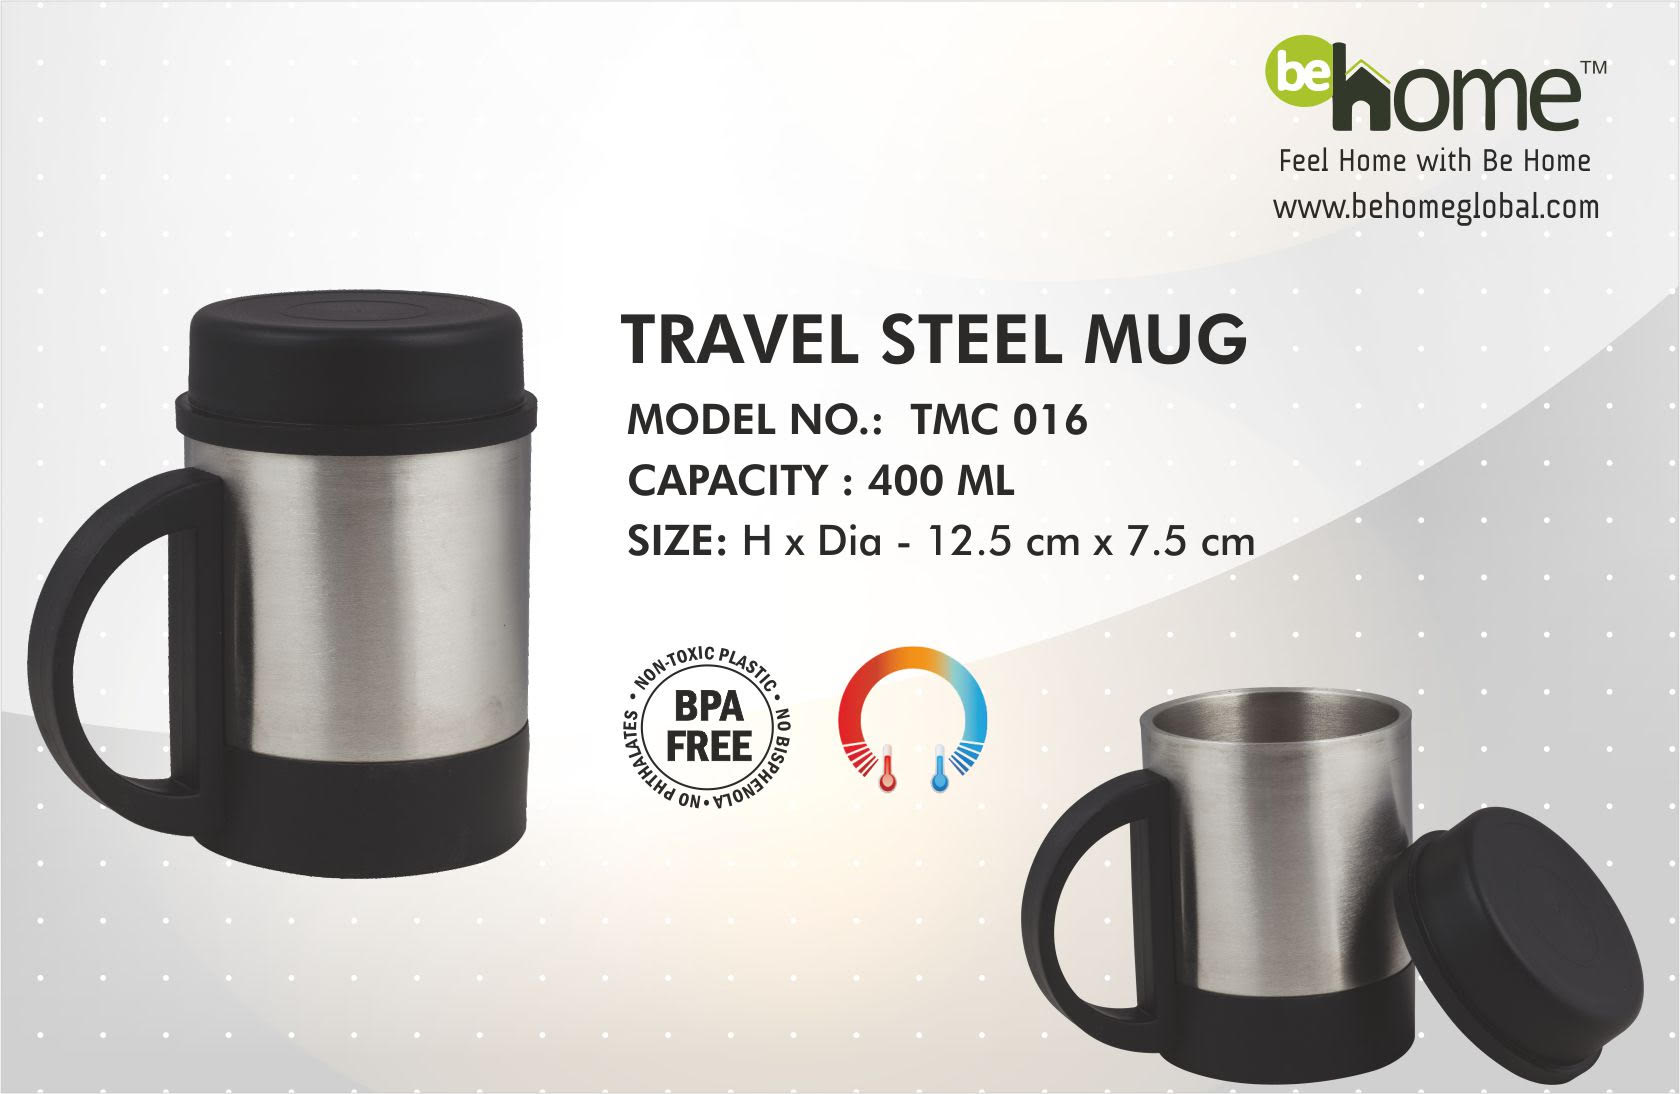 Best Corporate gifting in Hyderabad We are the best corporate gifting suppliers in Hyderabad. for more details :justgozing.nowfloats.com